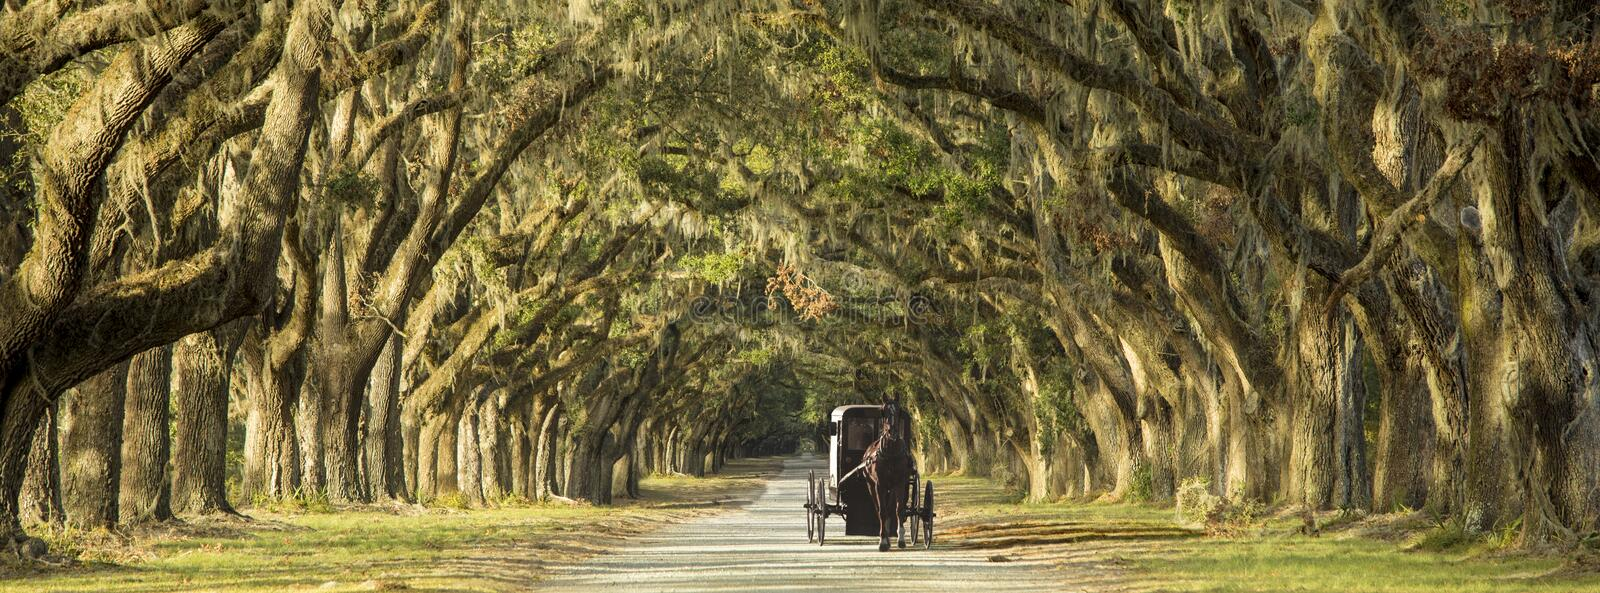 Horse drawn carriage on plantation royalty free stock image